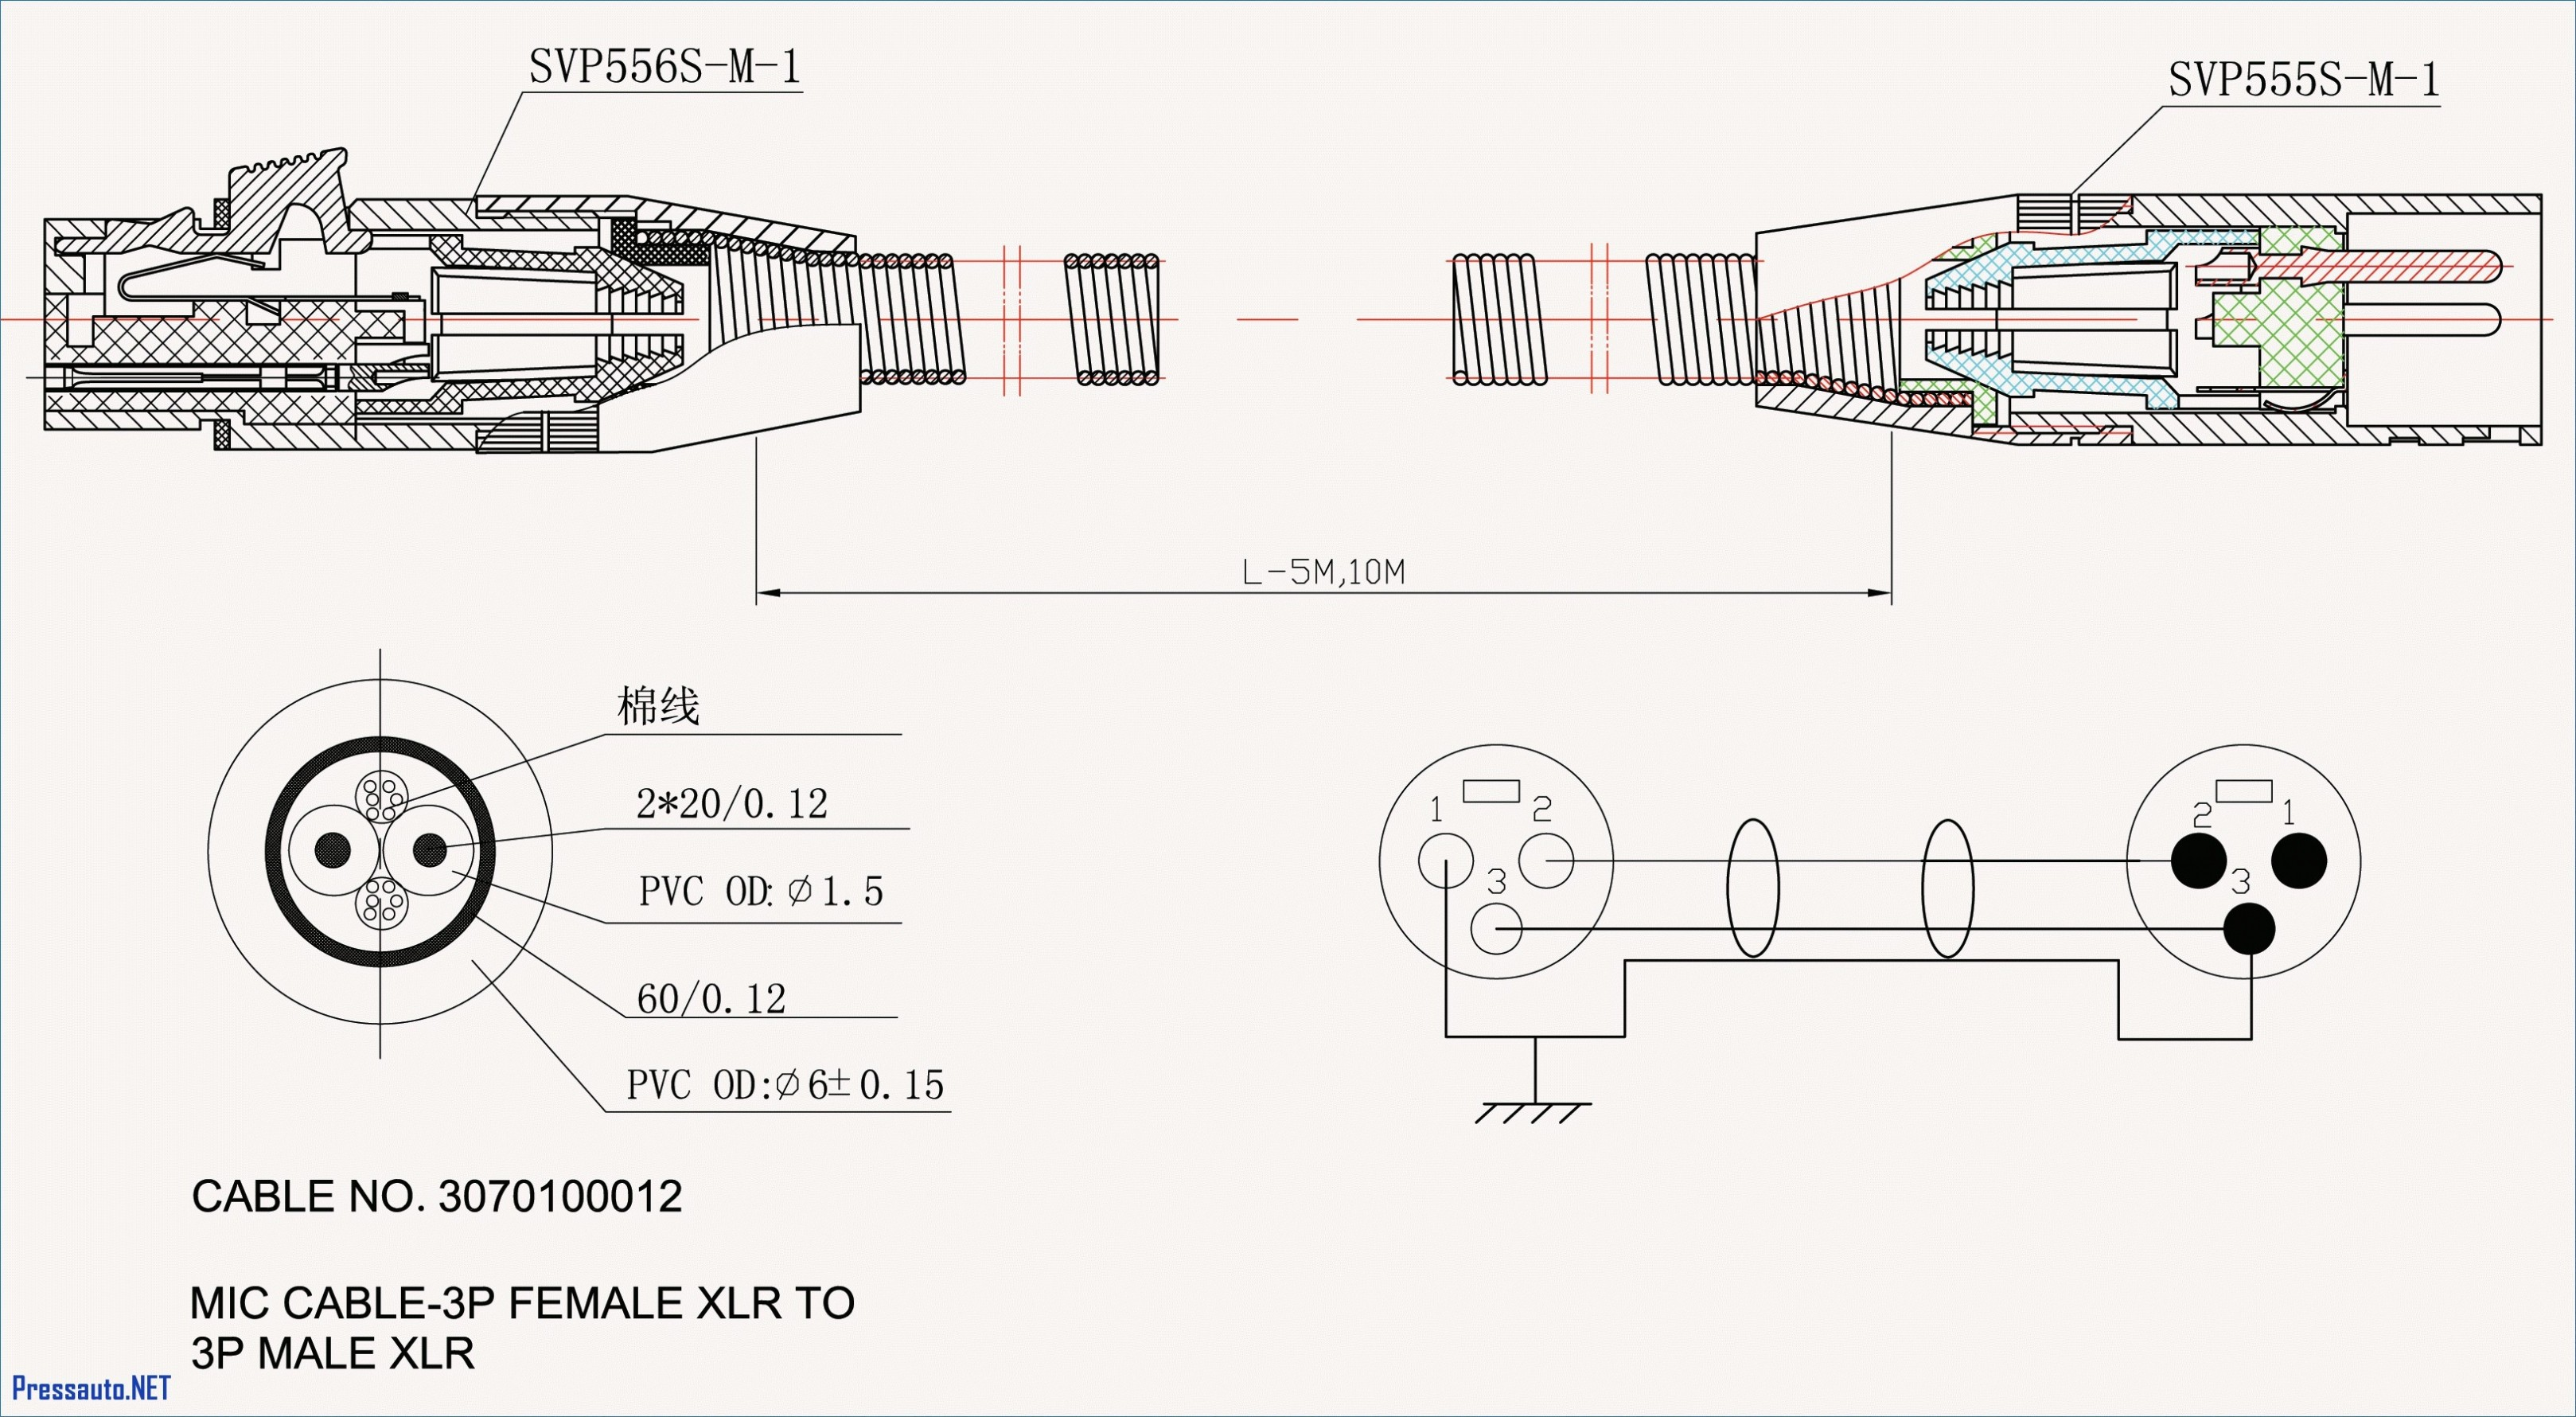 Wiring Diagram for 7 Wire Trailer Plug 7 Pole Trailer Plug Wiring Diagram Simple 7 Way Plug Wire Diagram Of Wiring Diagram for 7 Wire Trailer Plug